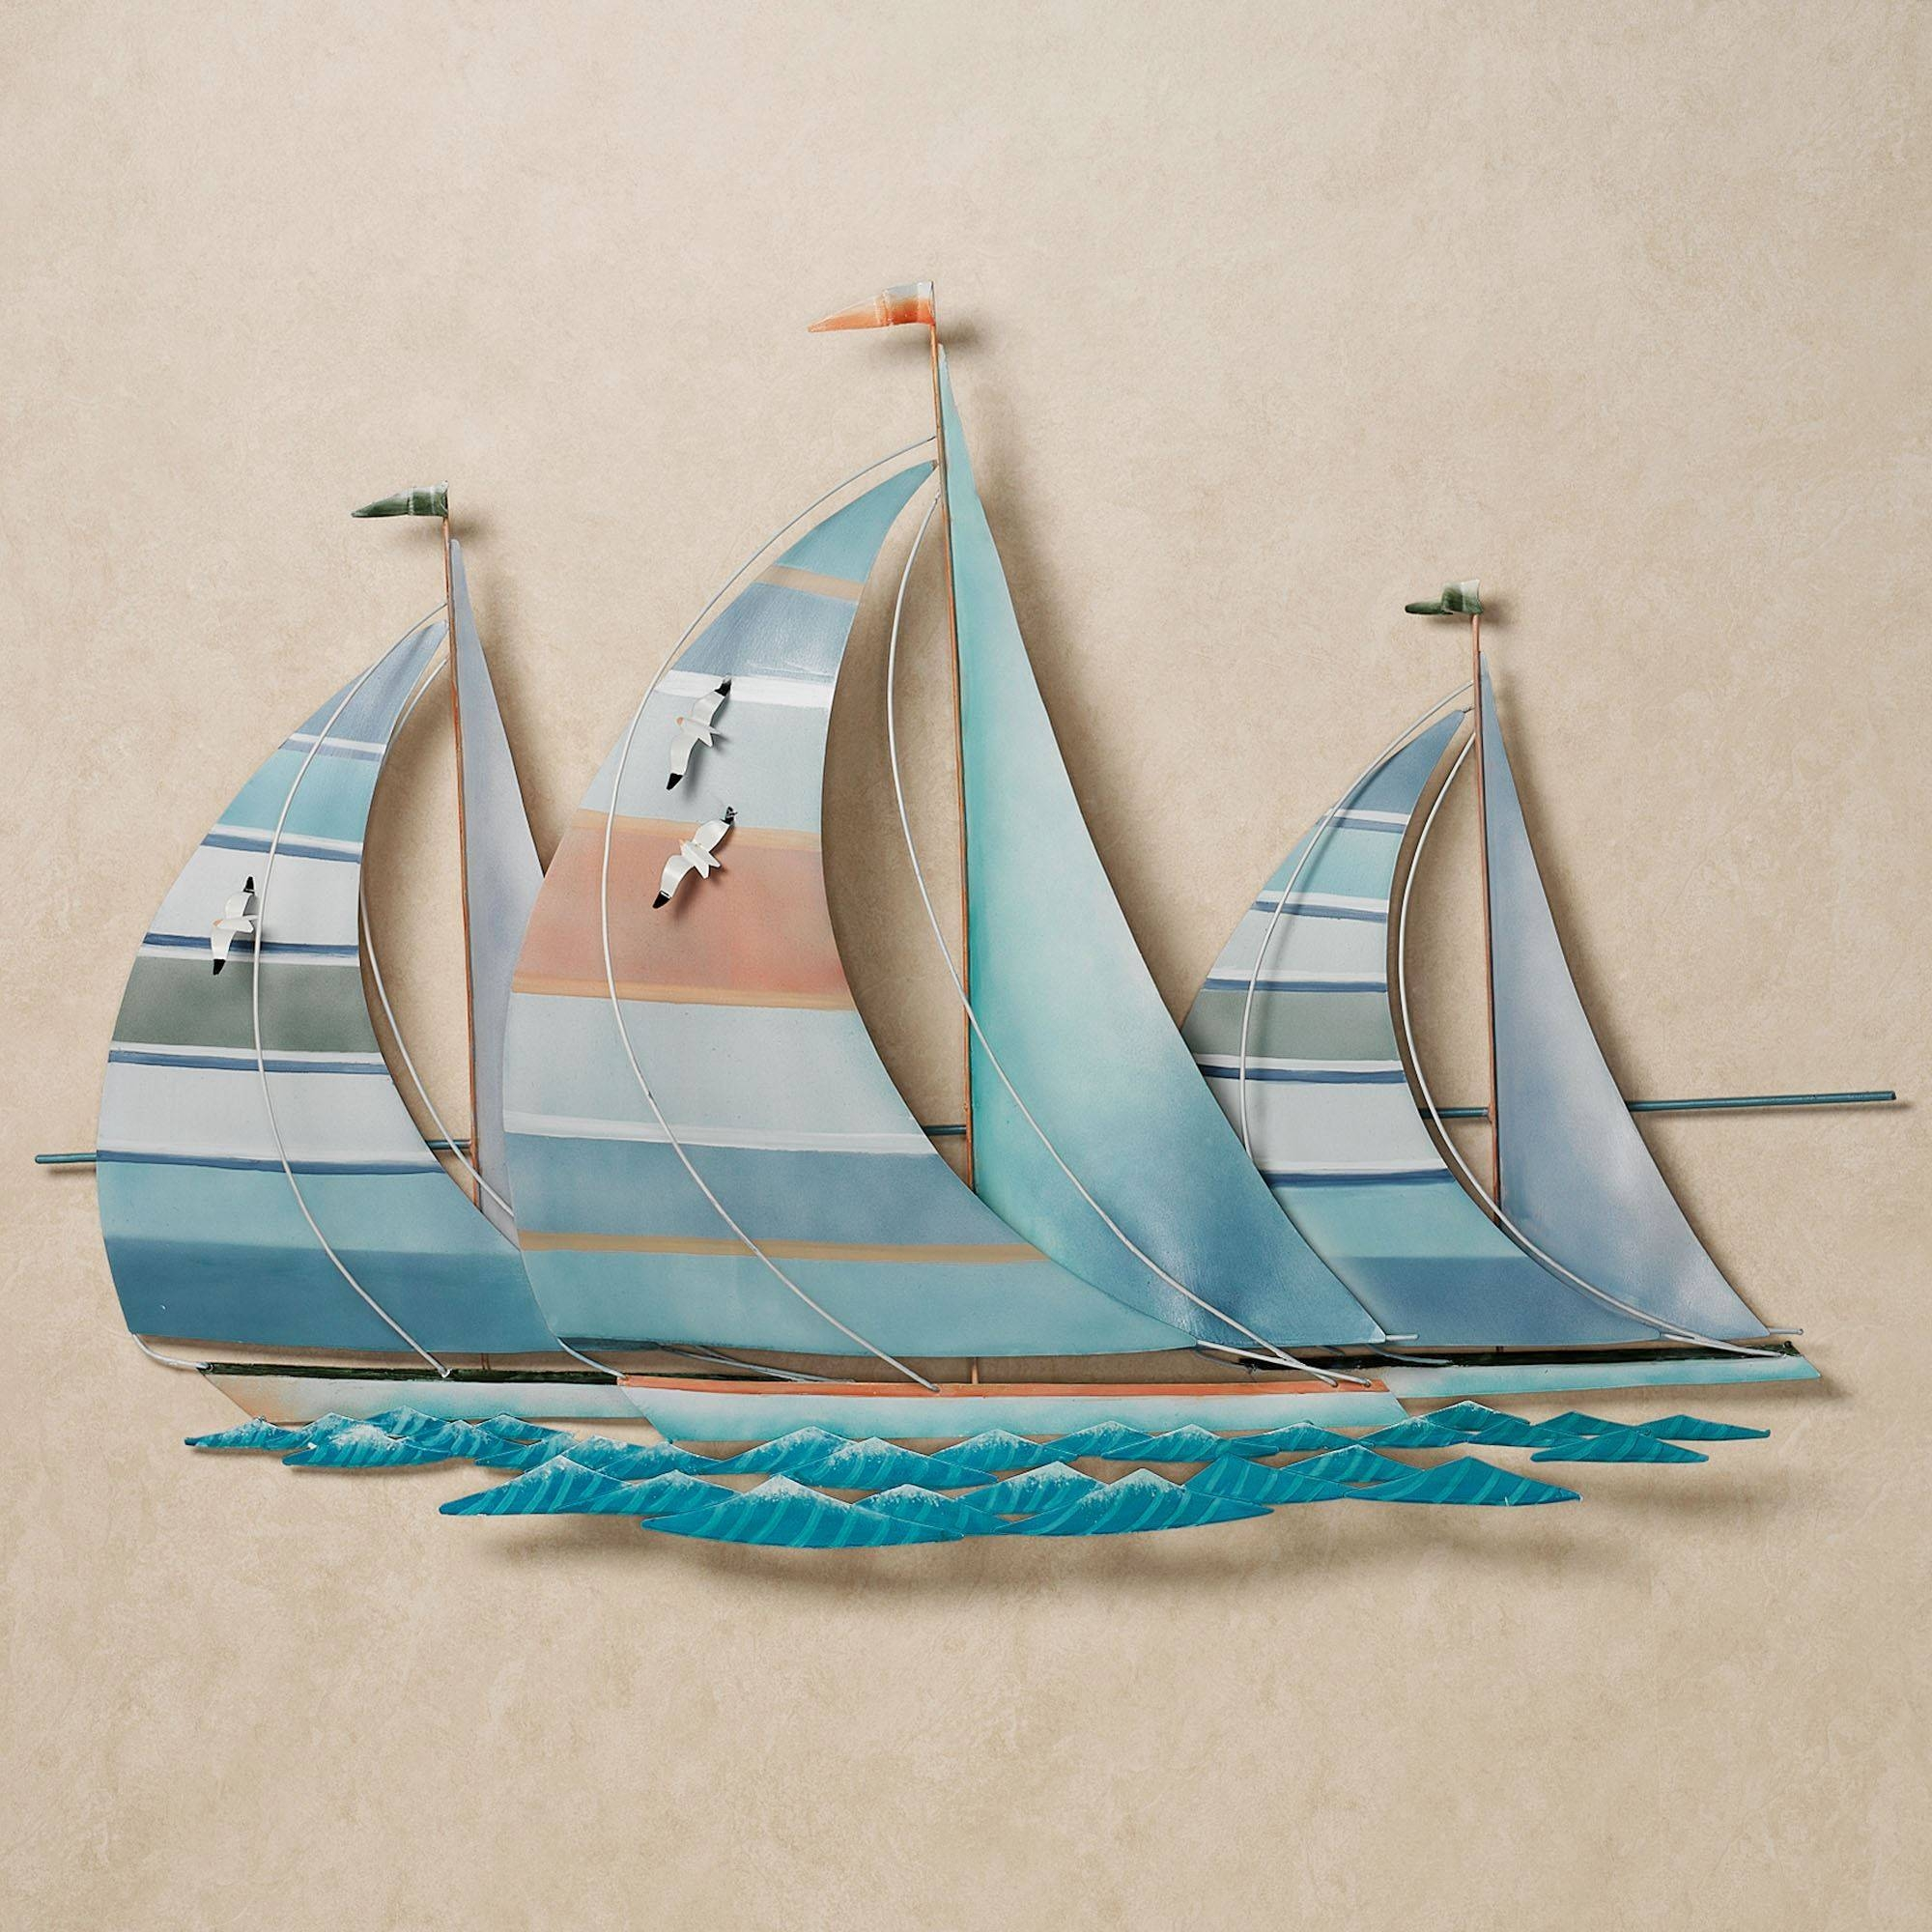 Regatta Finish Line Multi Cool Metal Sailboat Wall Sculpture For Most Recent Coastal Metal Wall Art (Gallery 9 of 20)